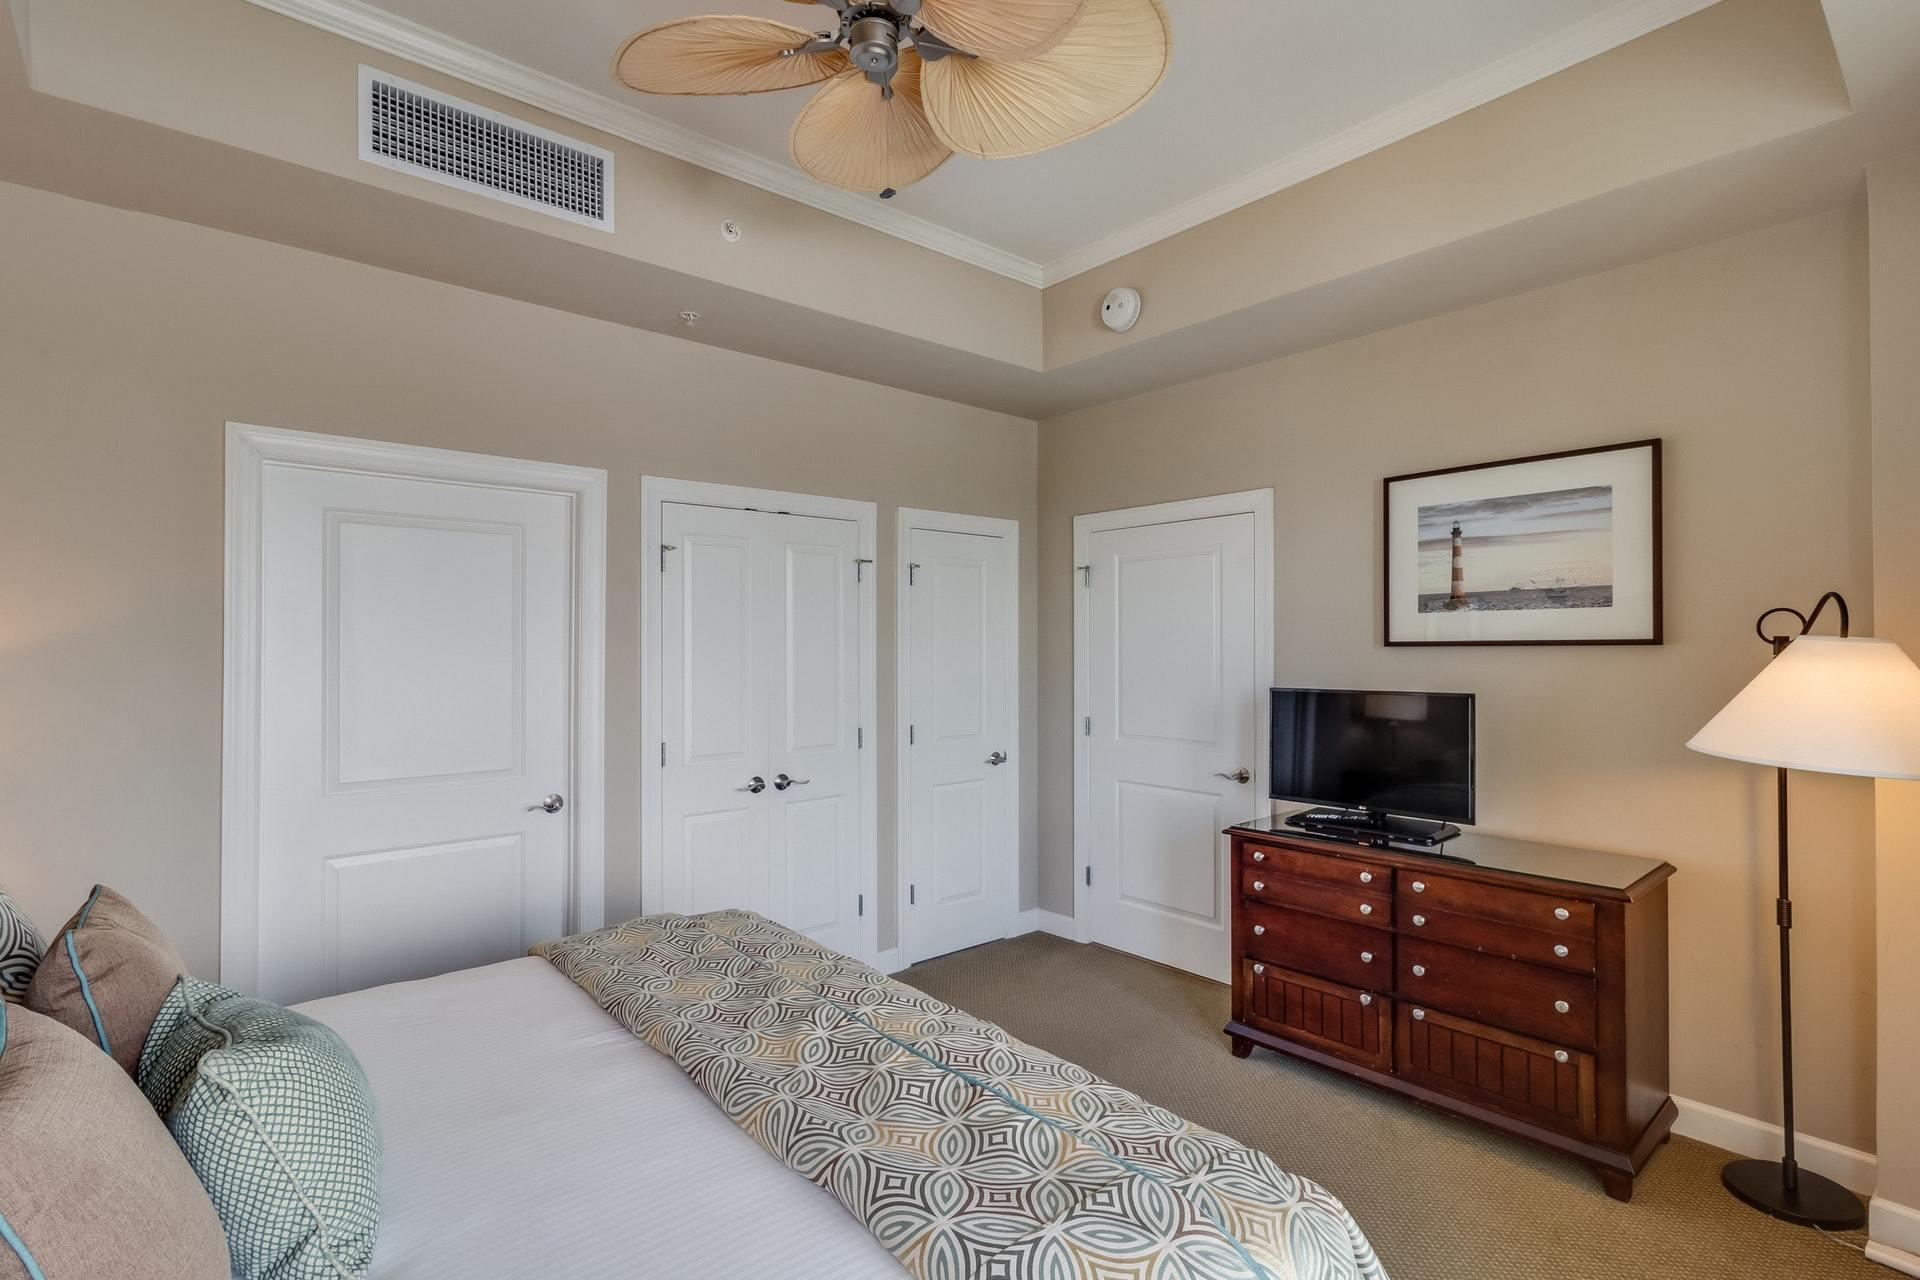 Wild Dunes Homes For Sale - 505/507 Village At Wild Dunes, Isle of Palms, SC - 7